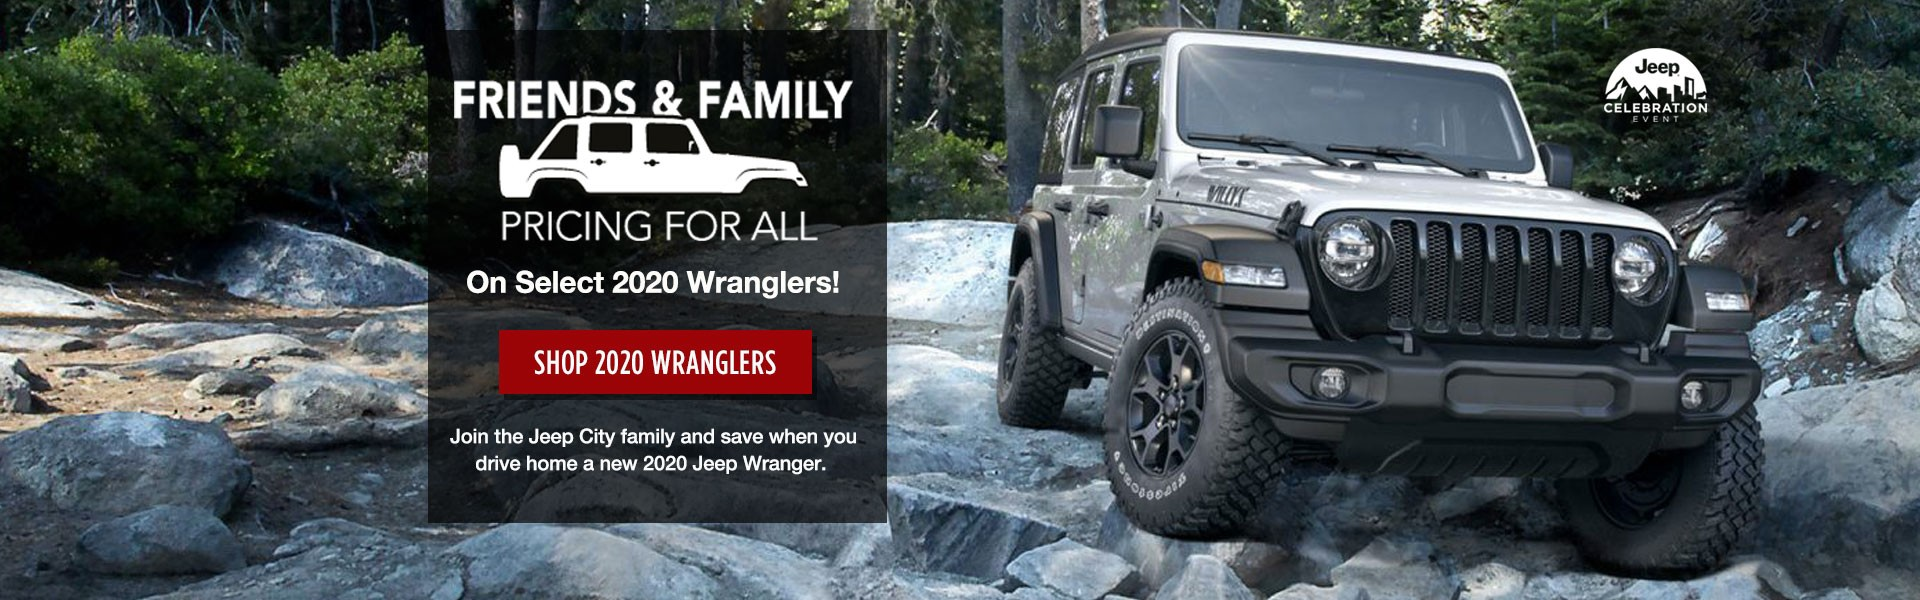 Wrangler Friends and Family Event